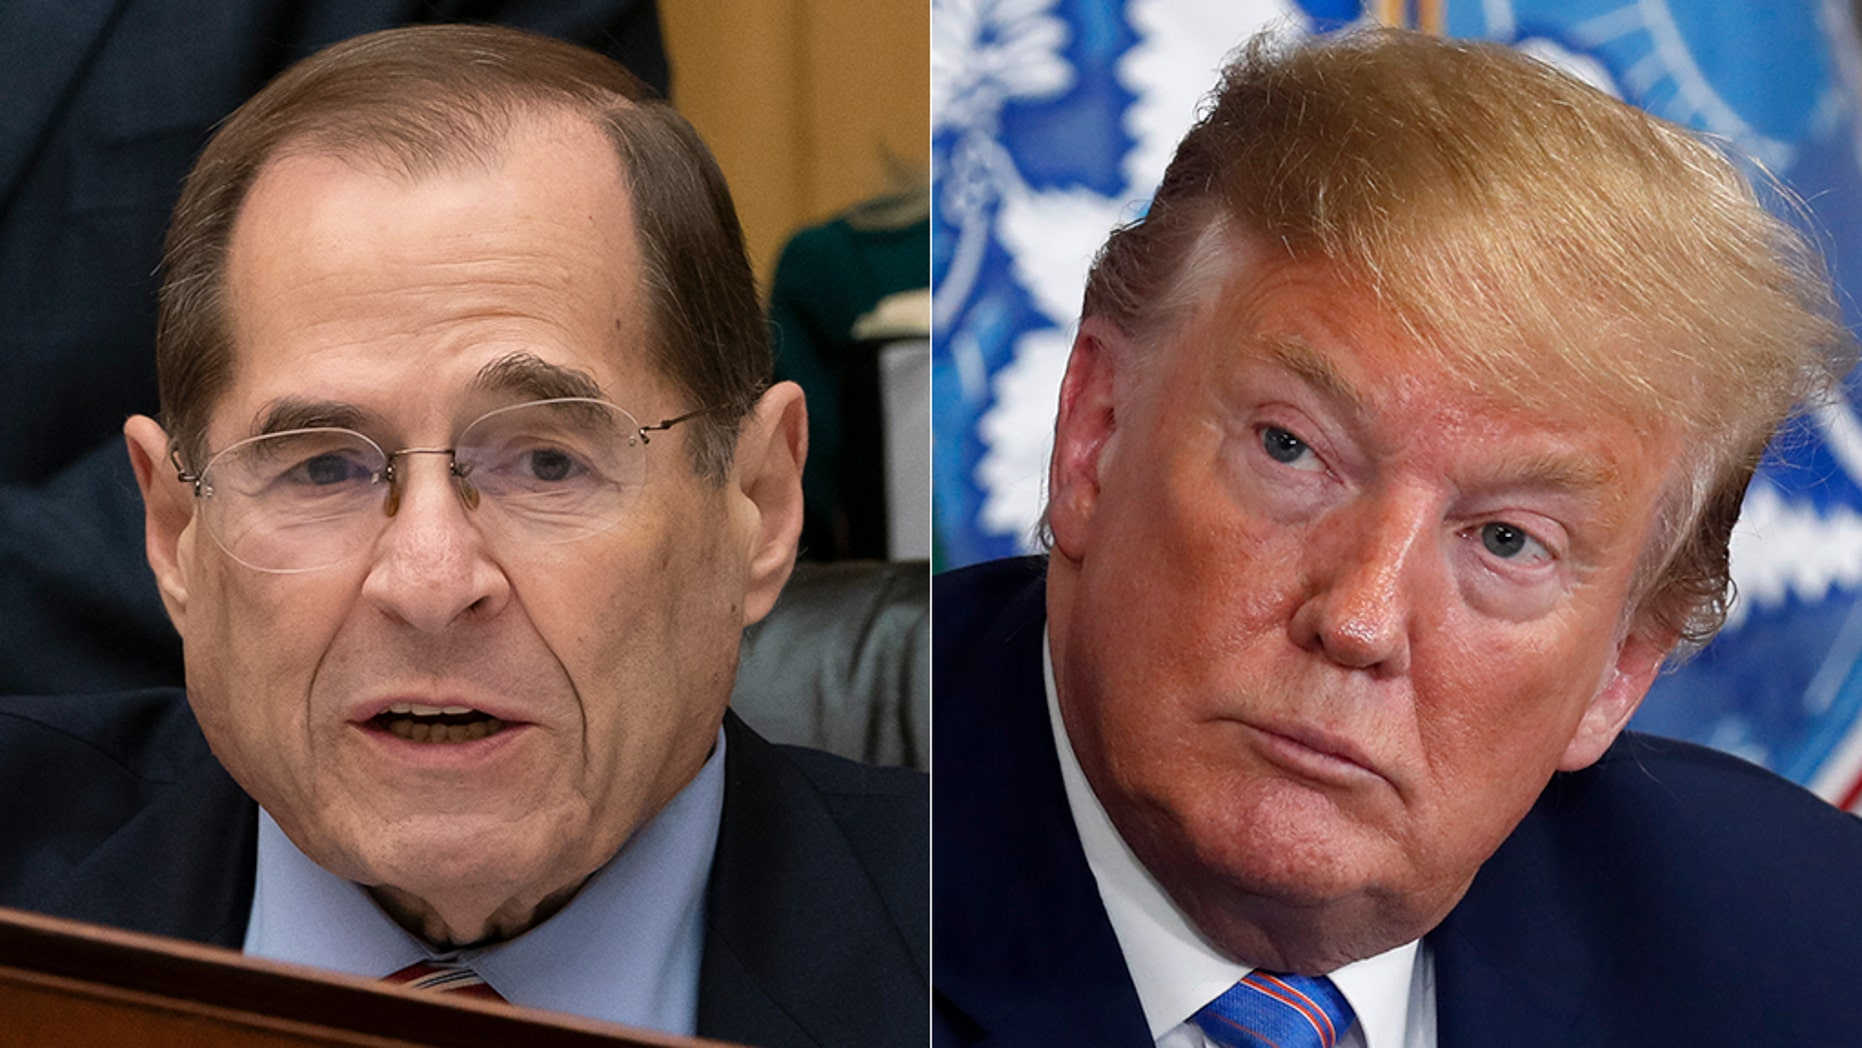 """House Judiciary Chairman Jerrold Nadler, D-N.Y., has ramped up his attack on President Trump, calling the administration """"lawless""""."""